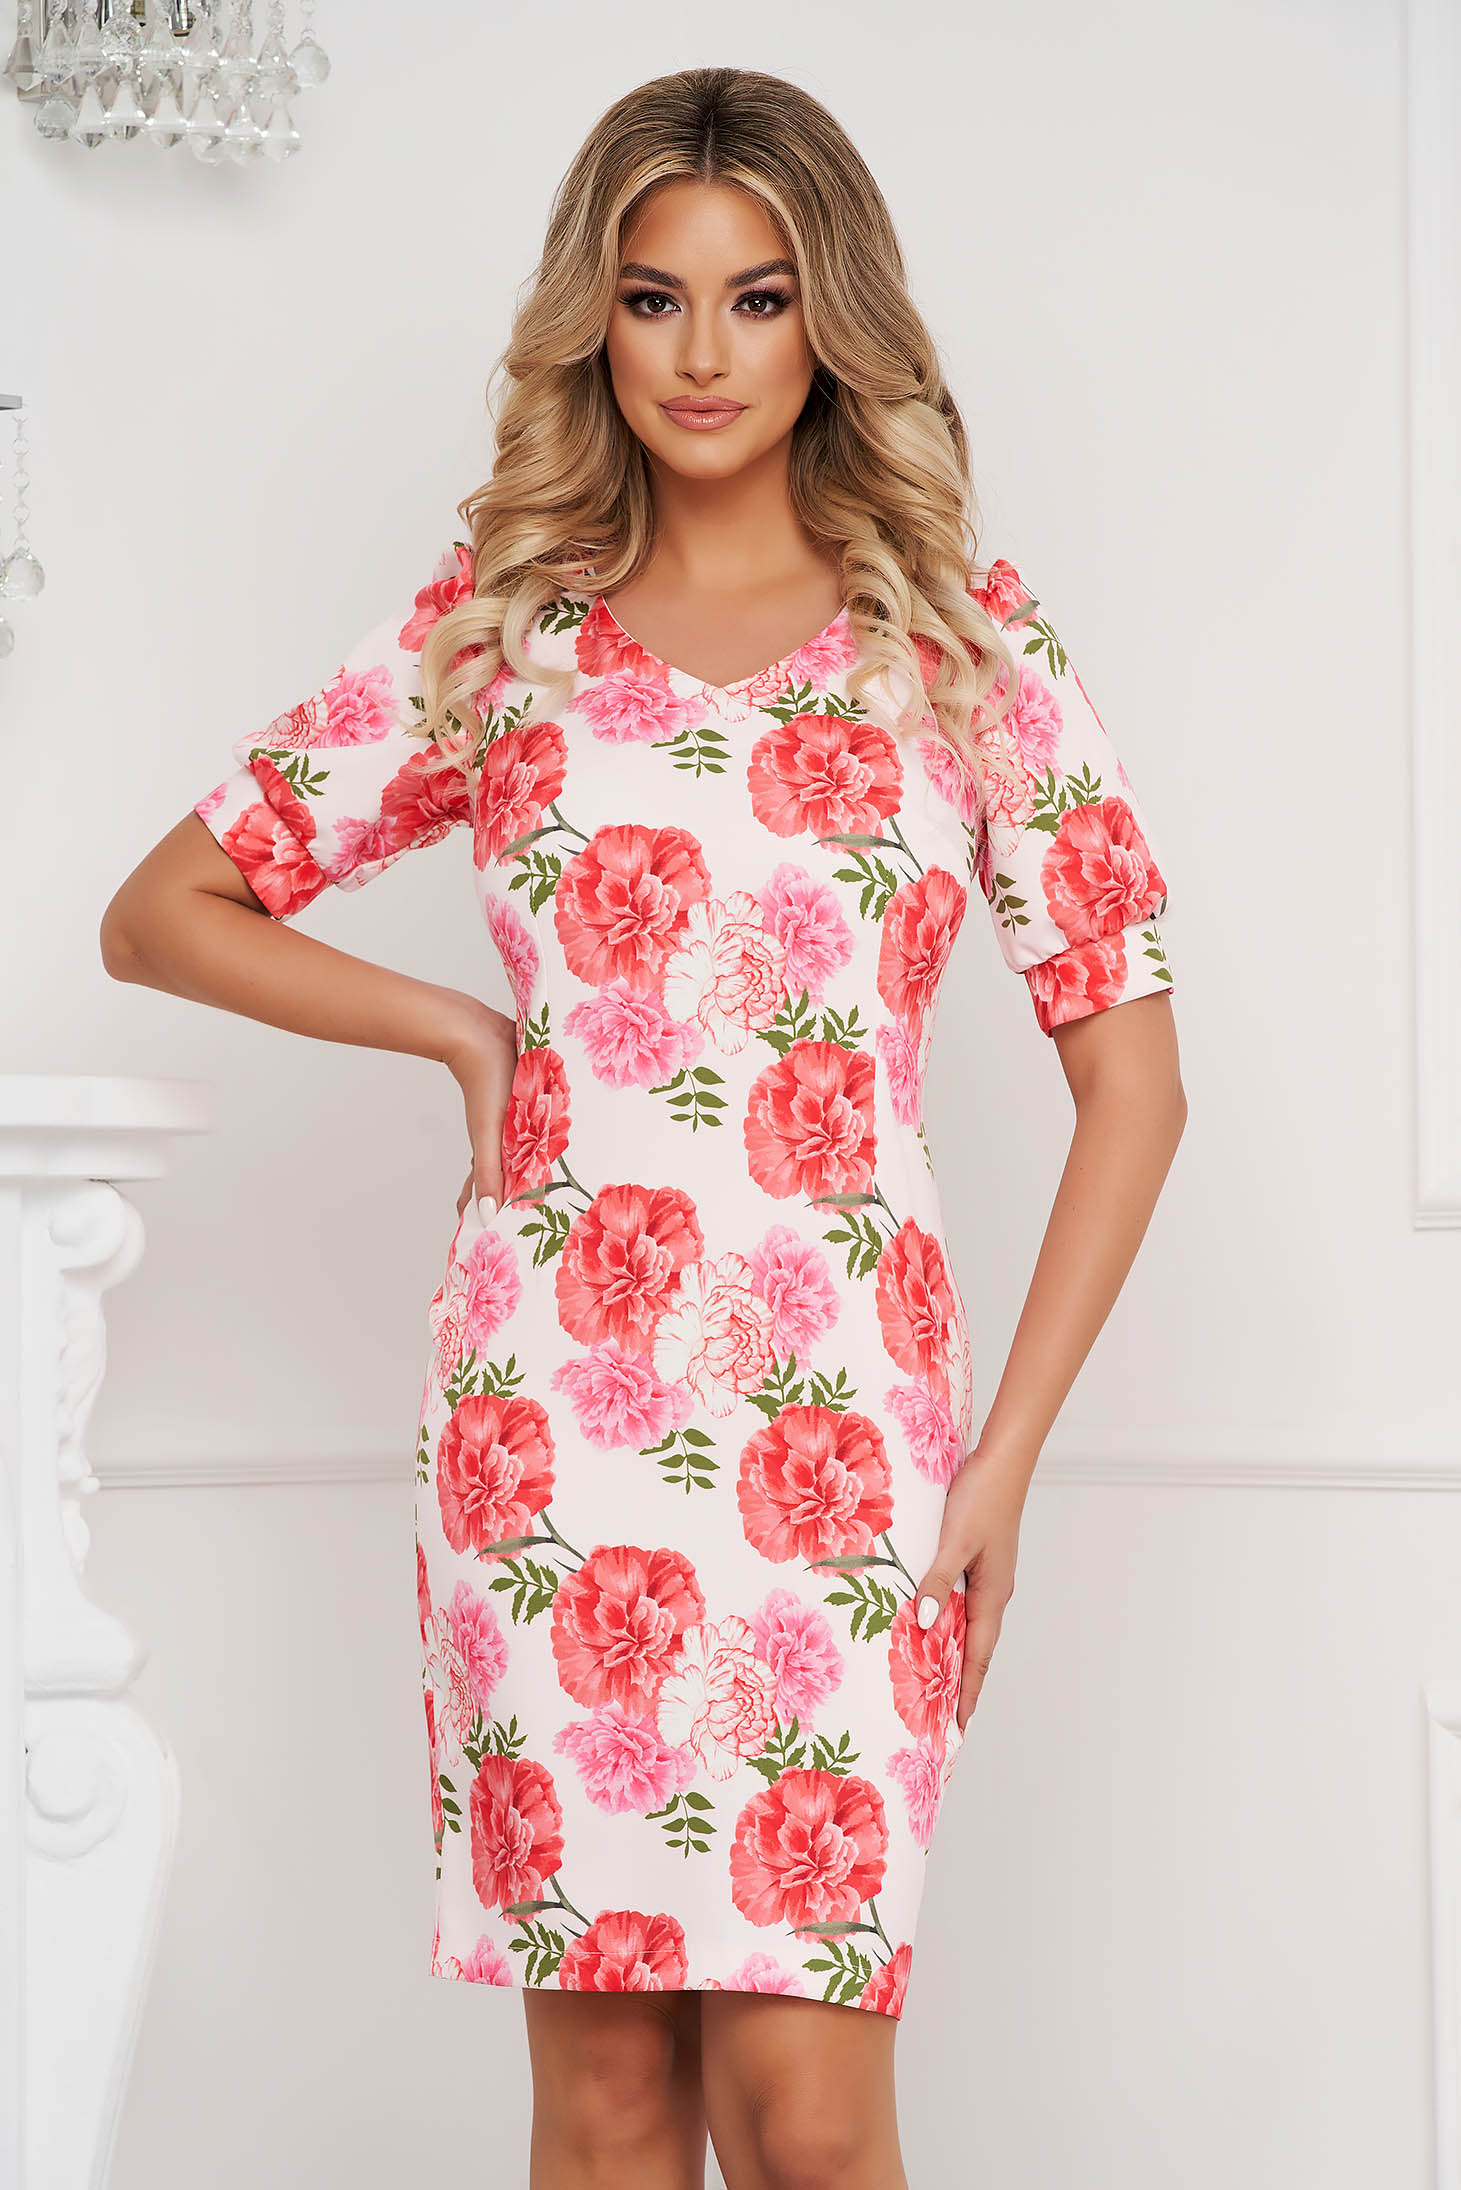 StarShinerS dress short cut pencil with floral print non-flexible thin fabric office